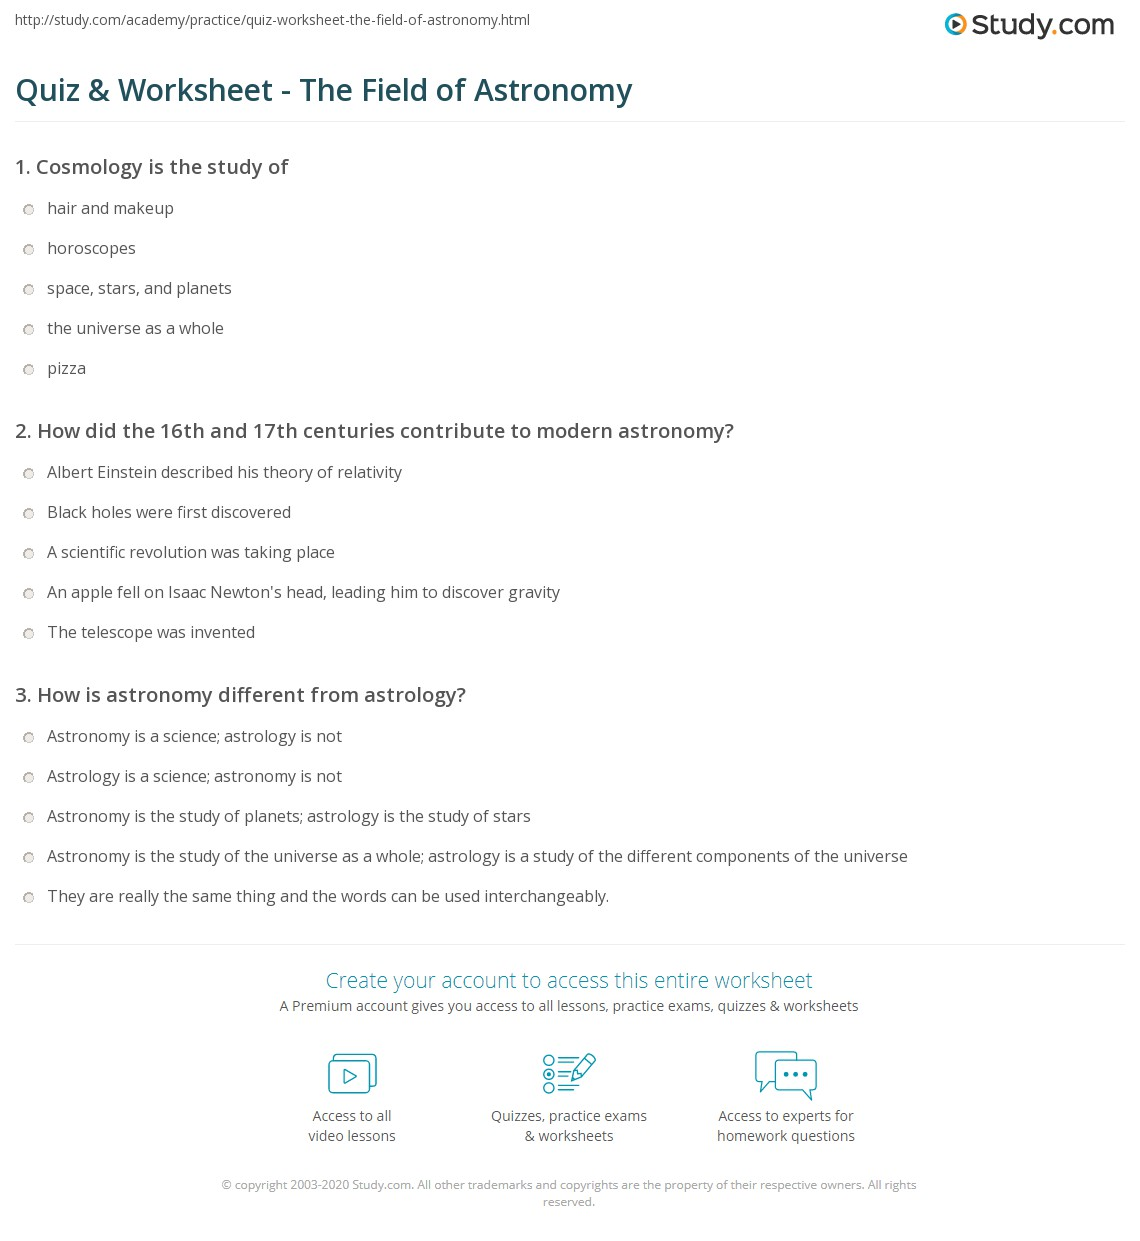 Astronomy quiz questions and answers pdf